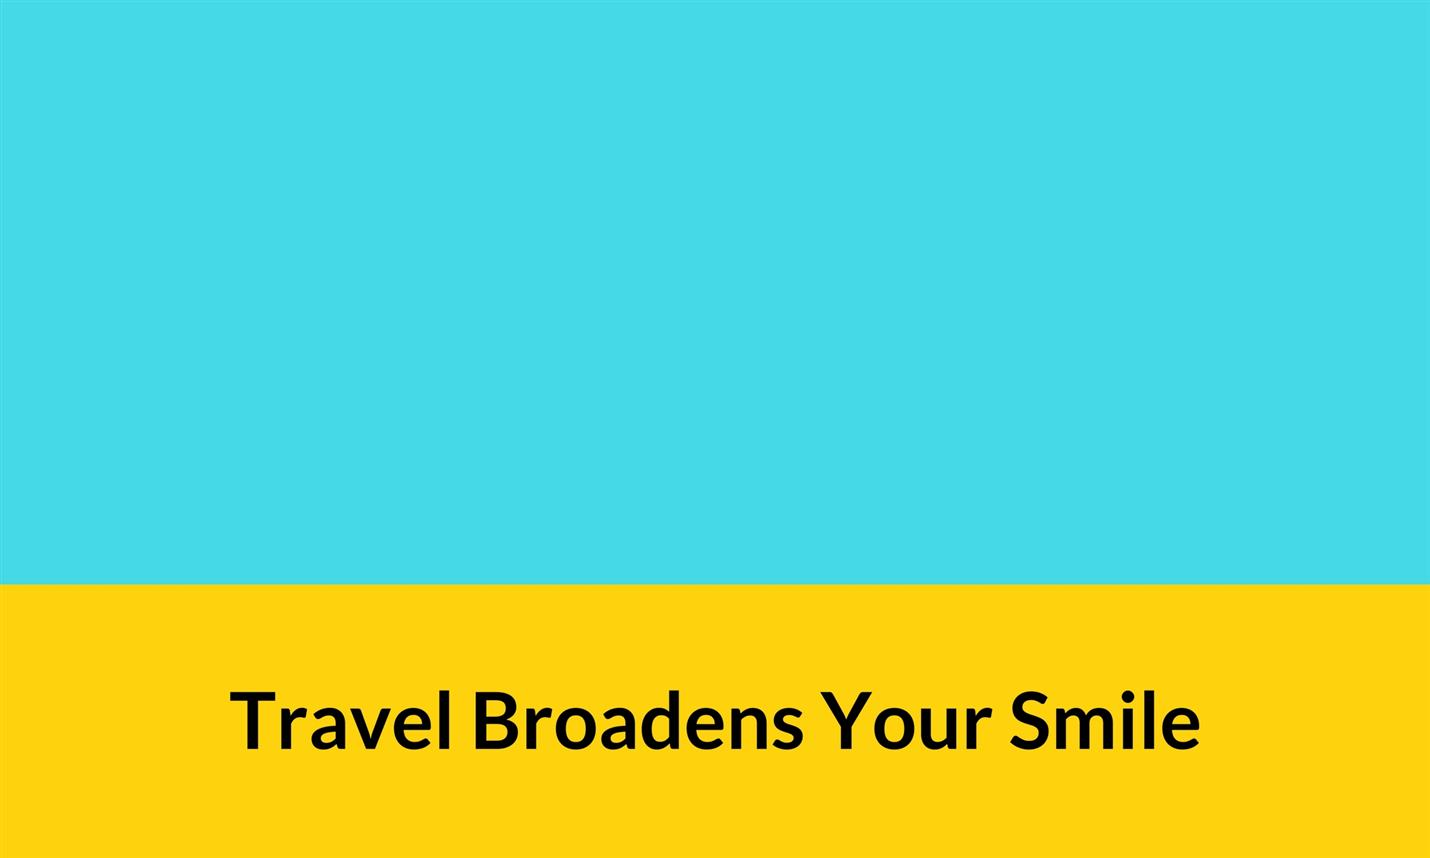 Travel Broadens Your Smile